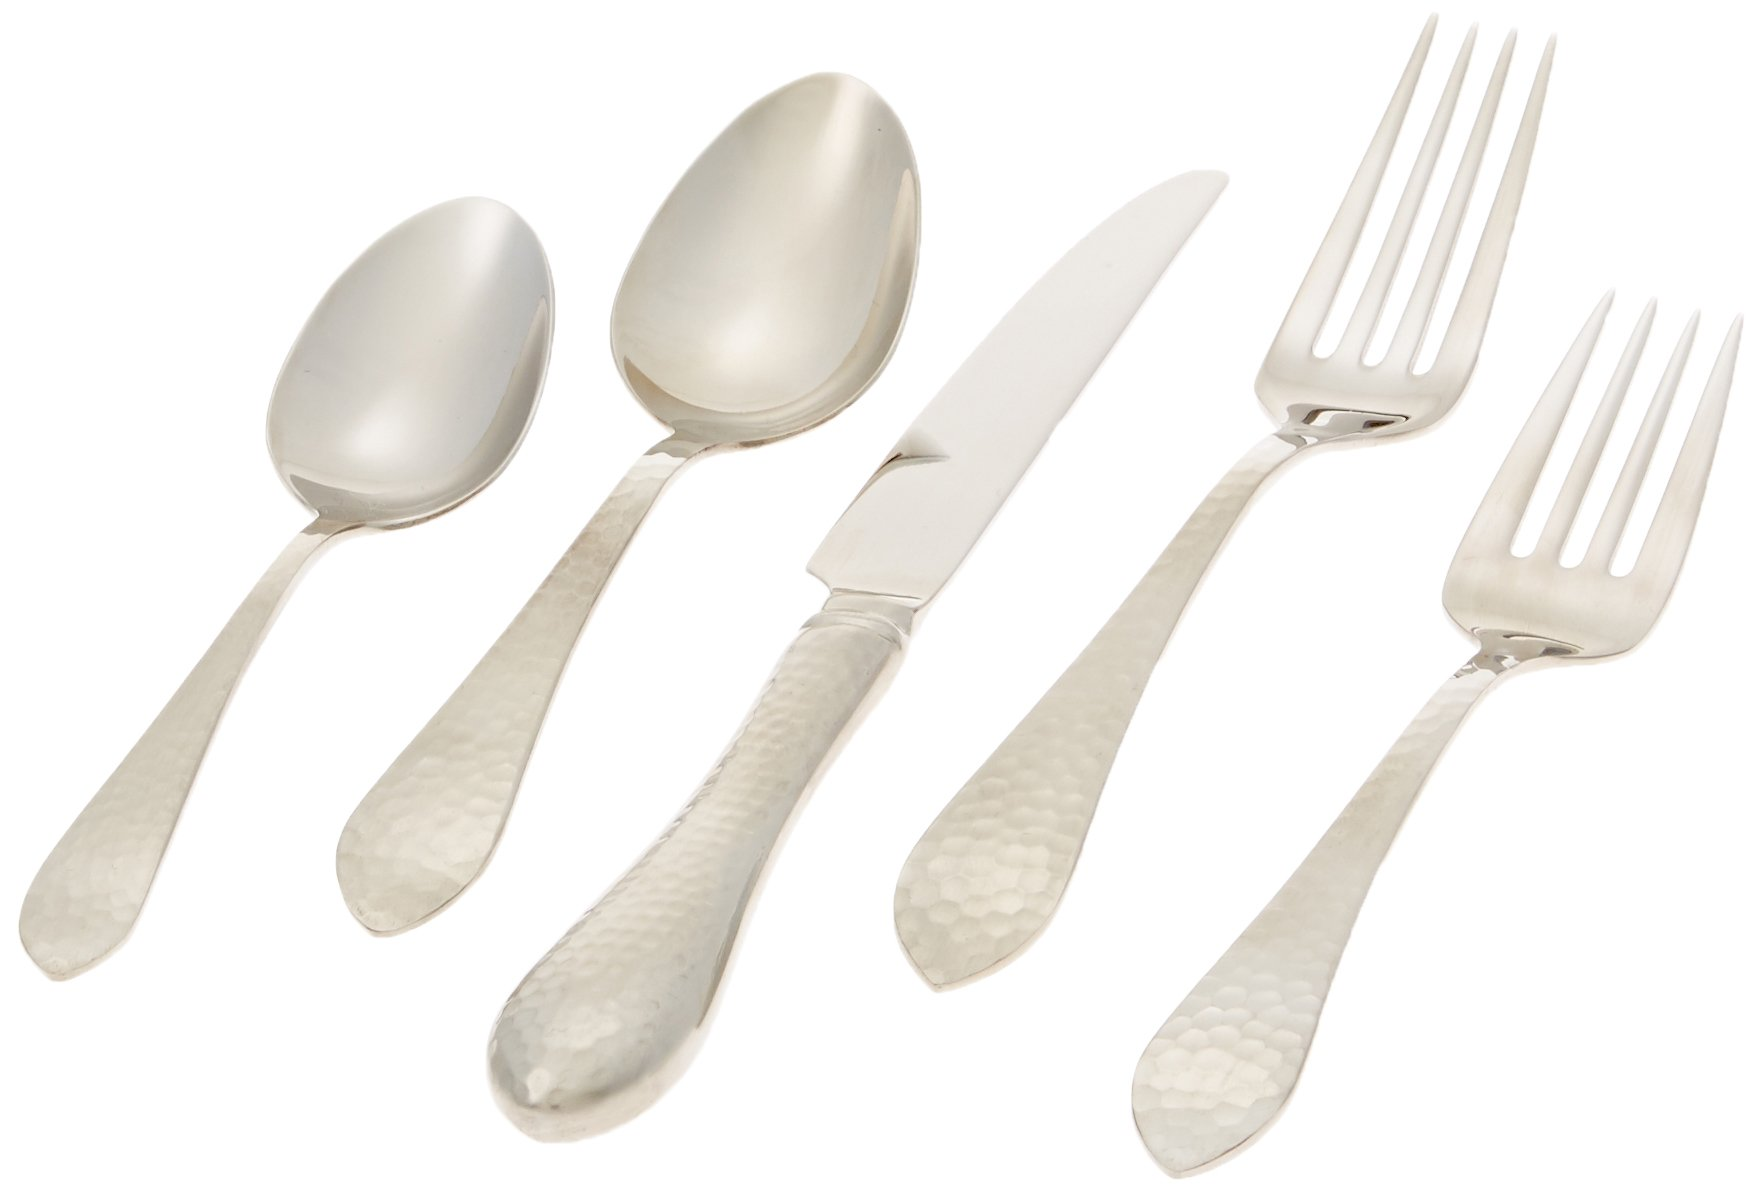 Reed & Barton Hammered Antique 18/10 Stainless Steel 5-Piece Place Setting, Service for 1